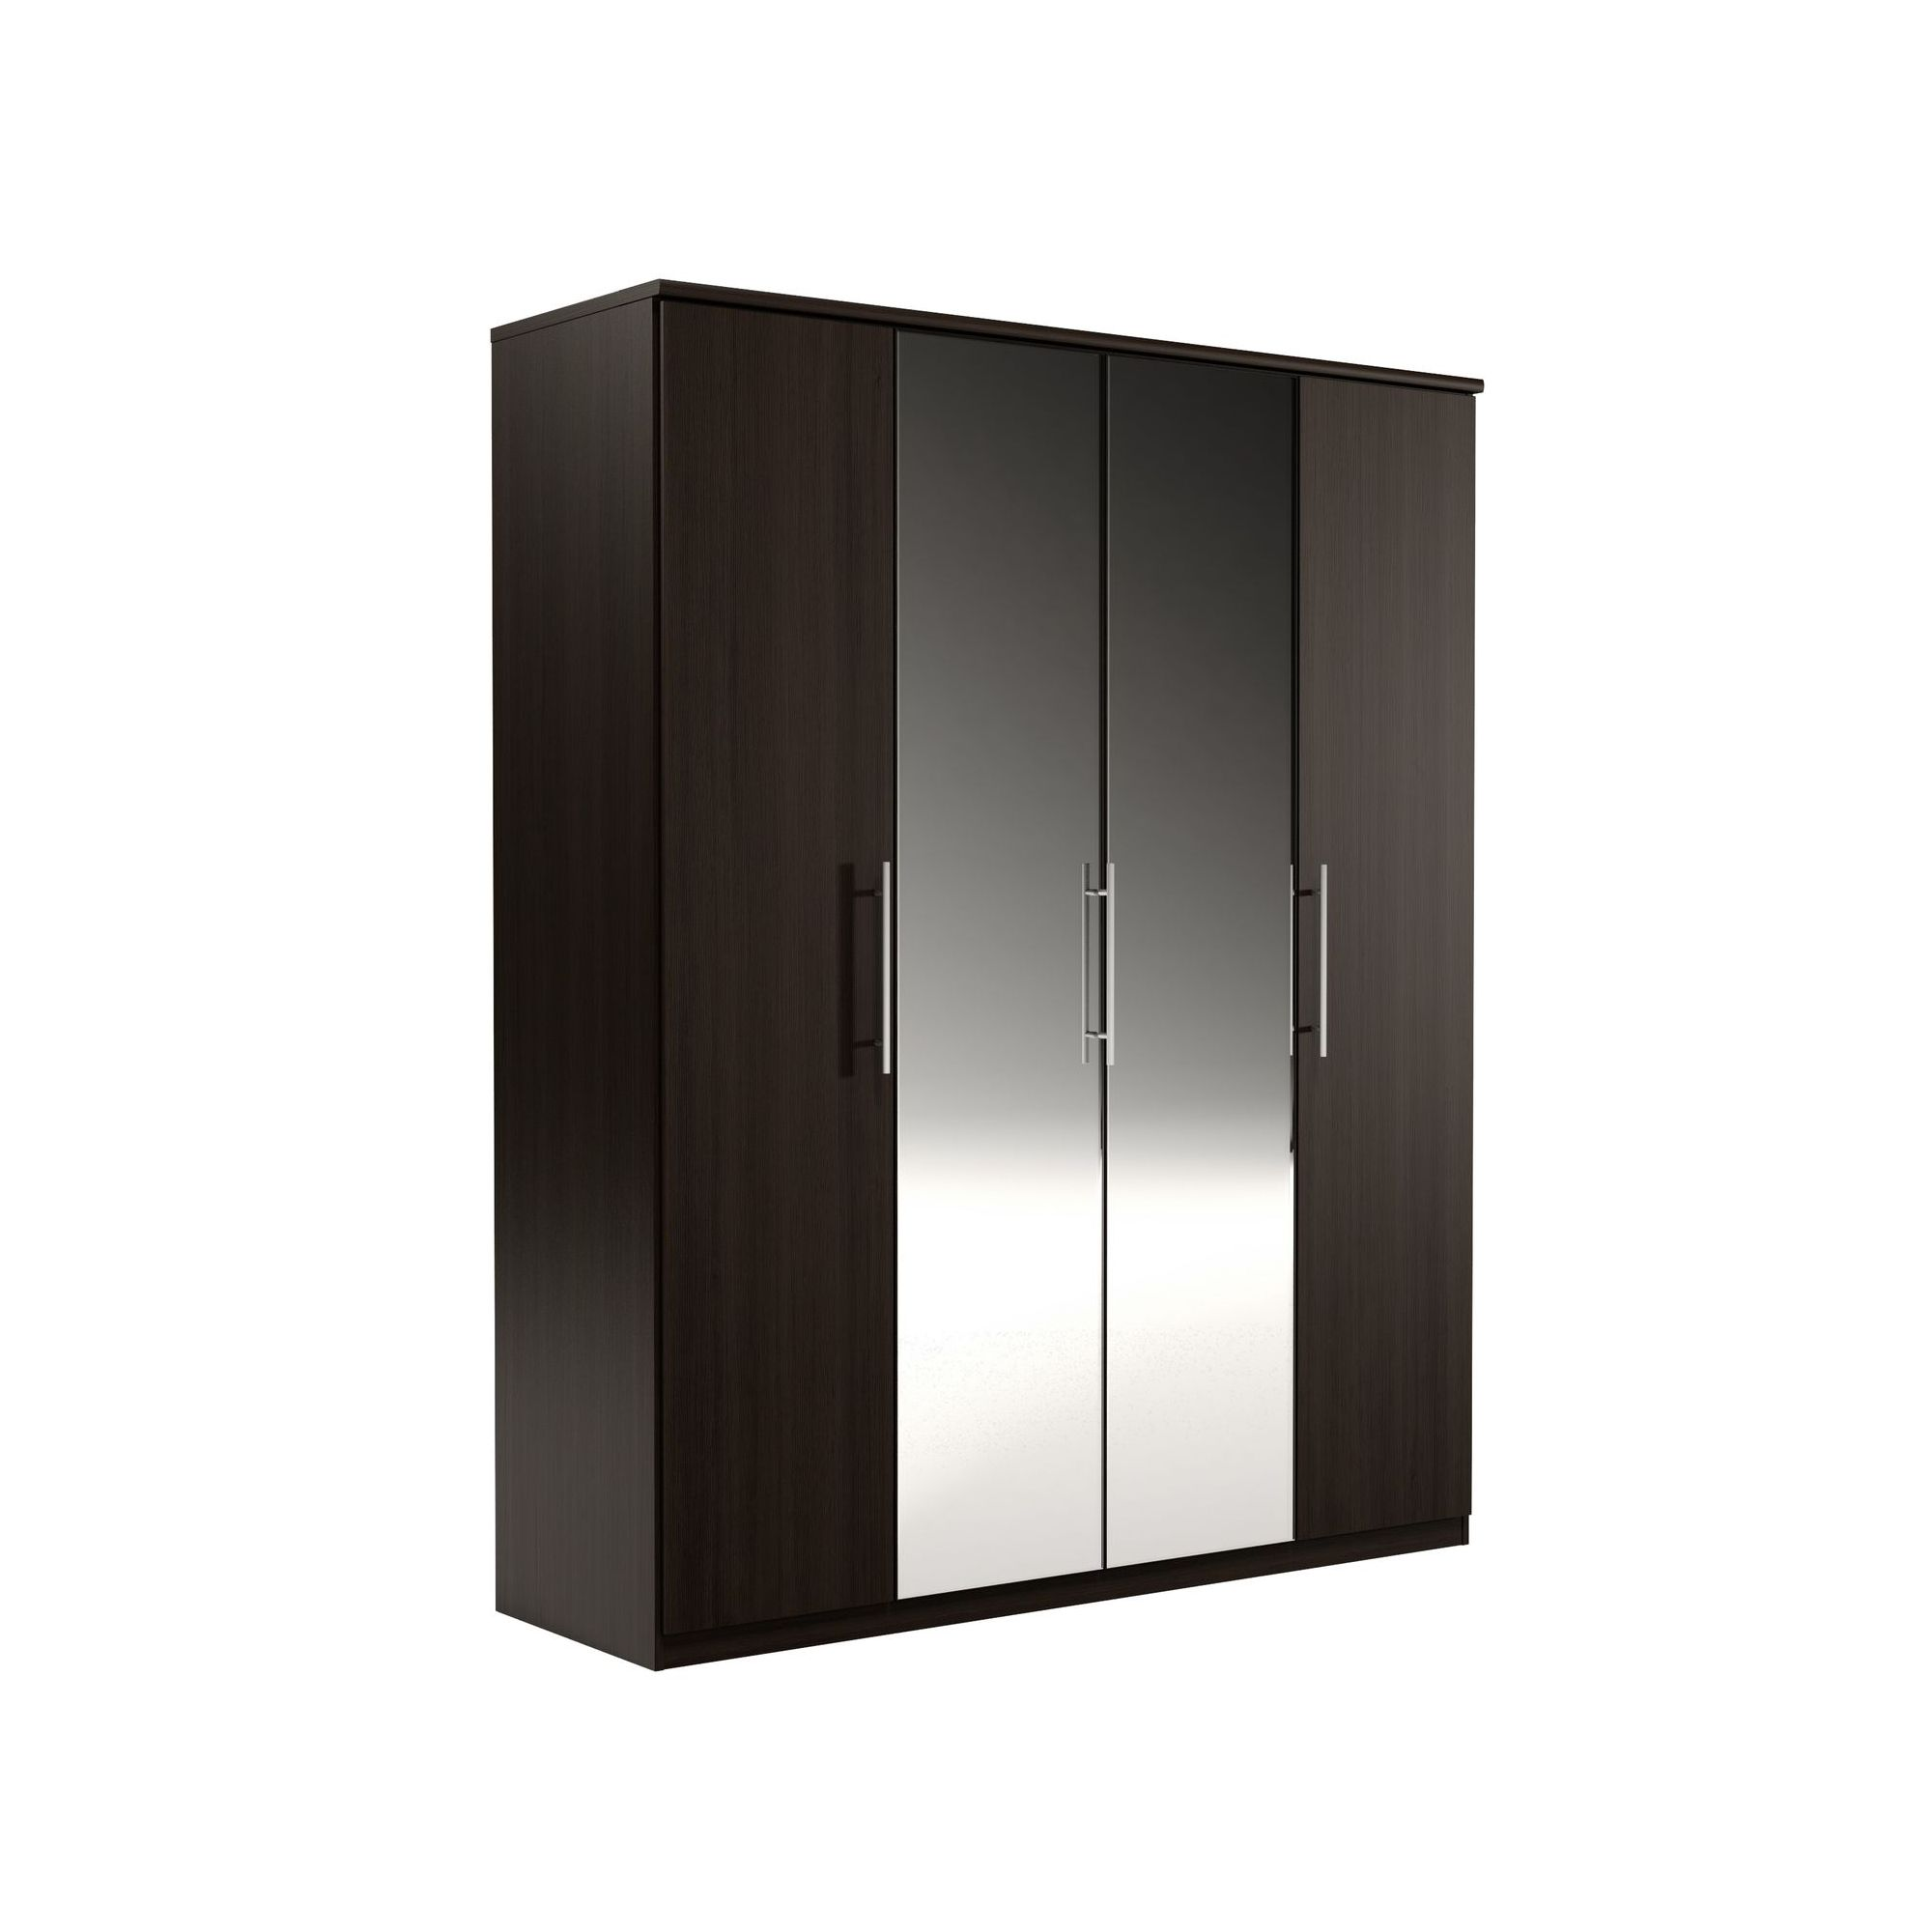 Urbane Designs Prague 4 Door Wardrobe - Espresso at Tesco Direct